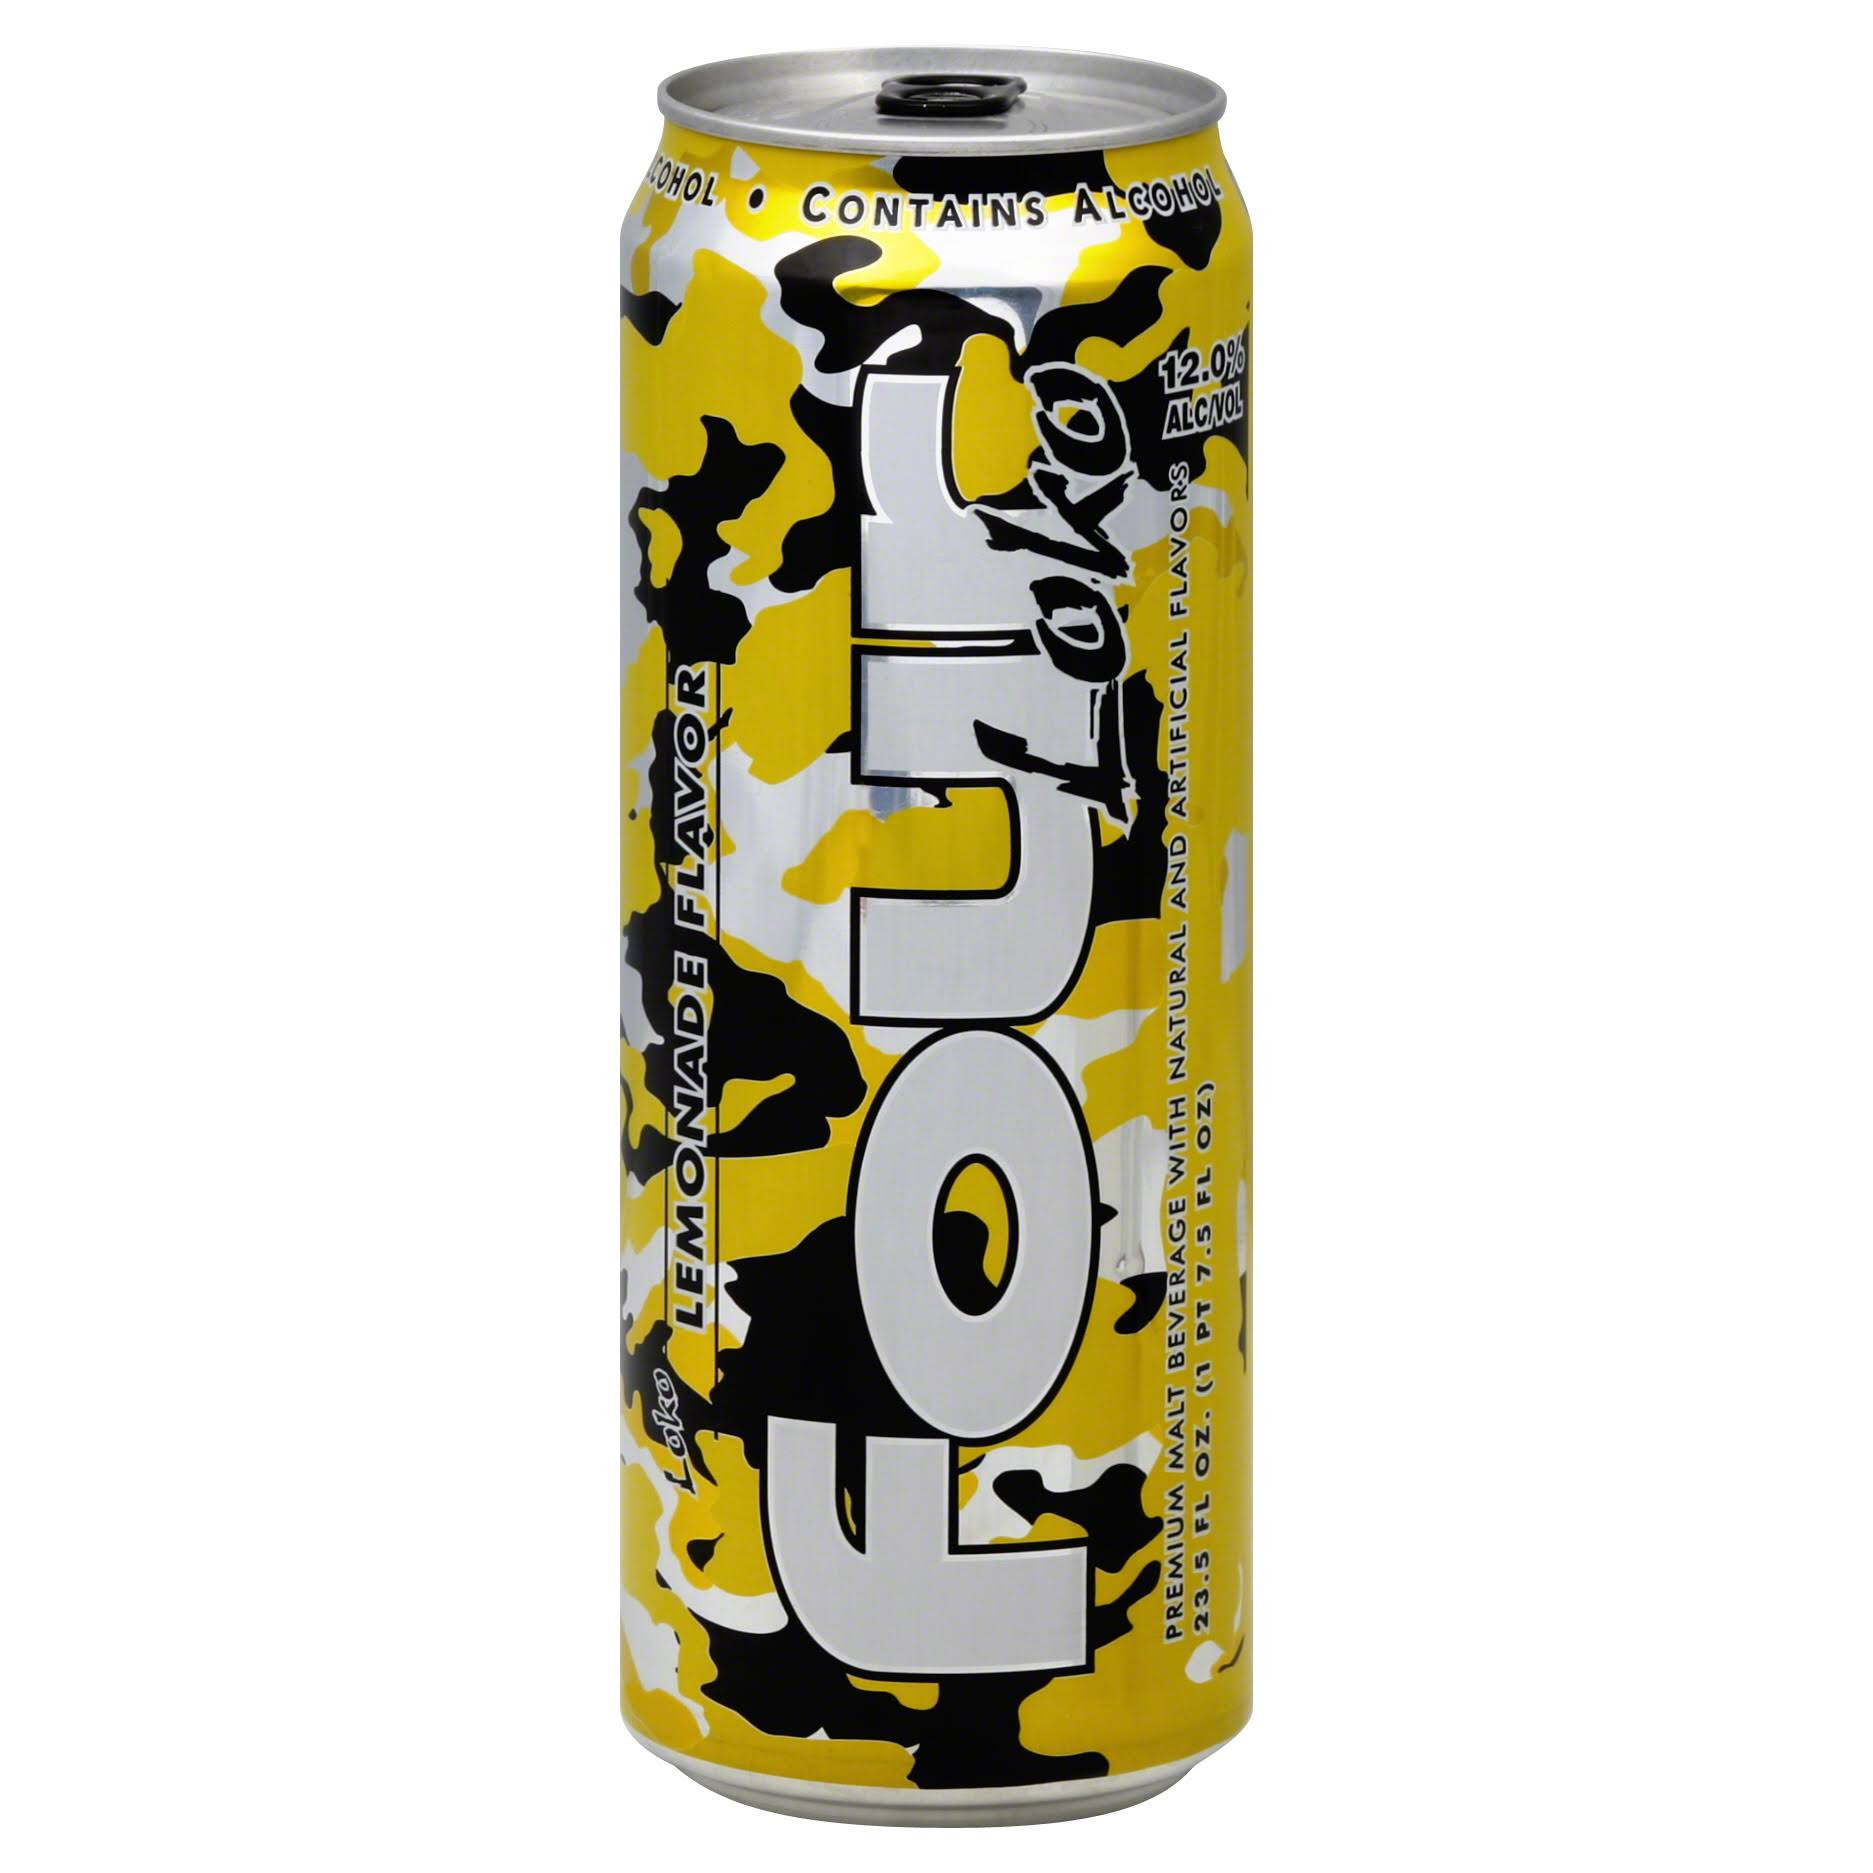 Four Loko Malt Beverage - Lemonade, 24oz